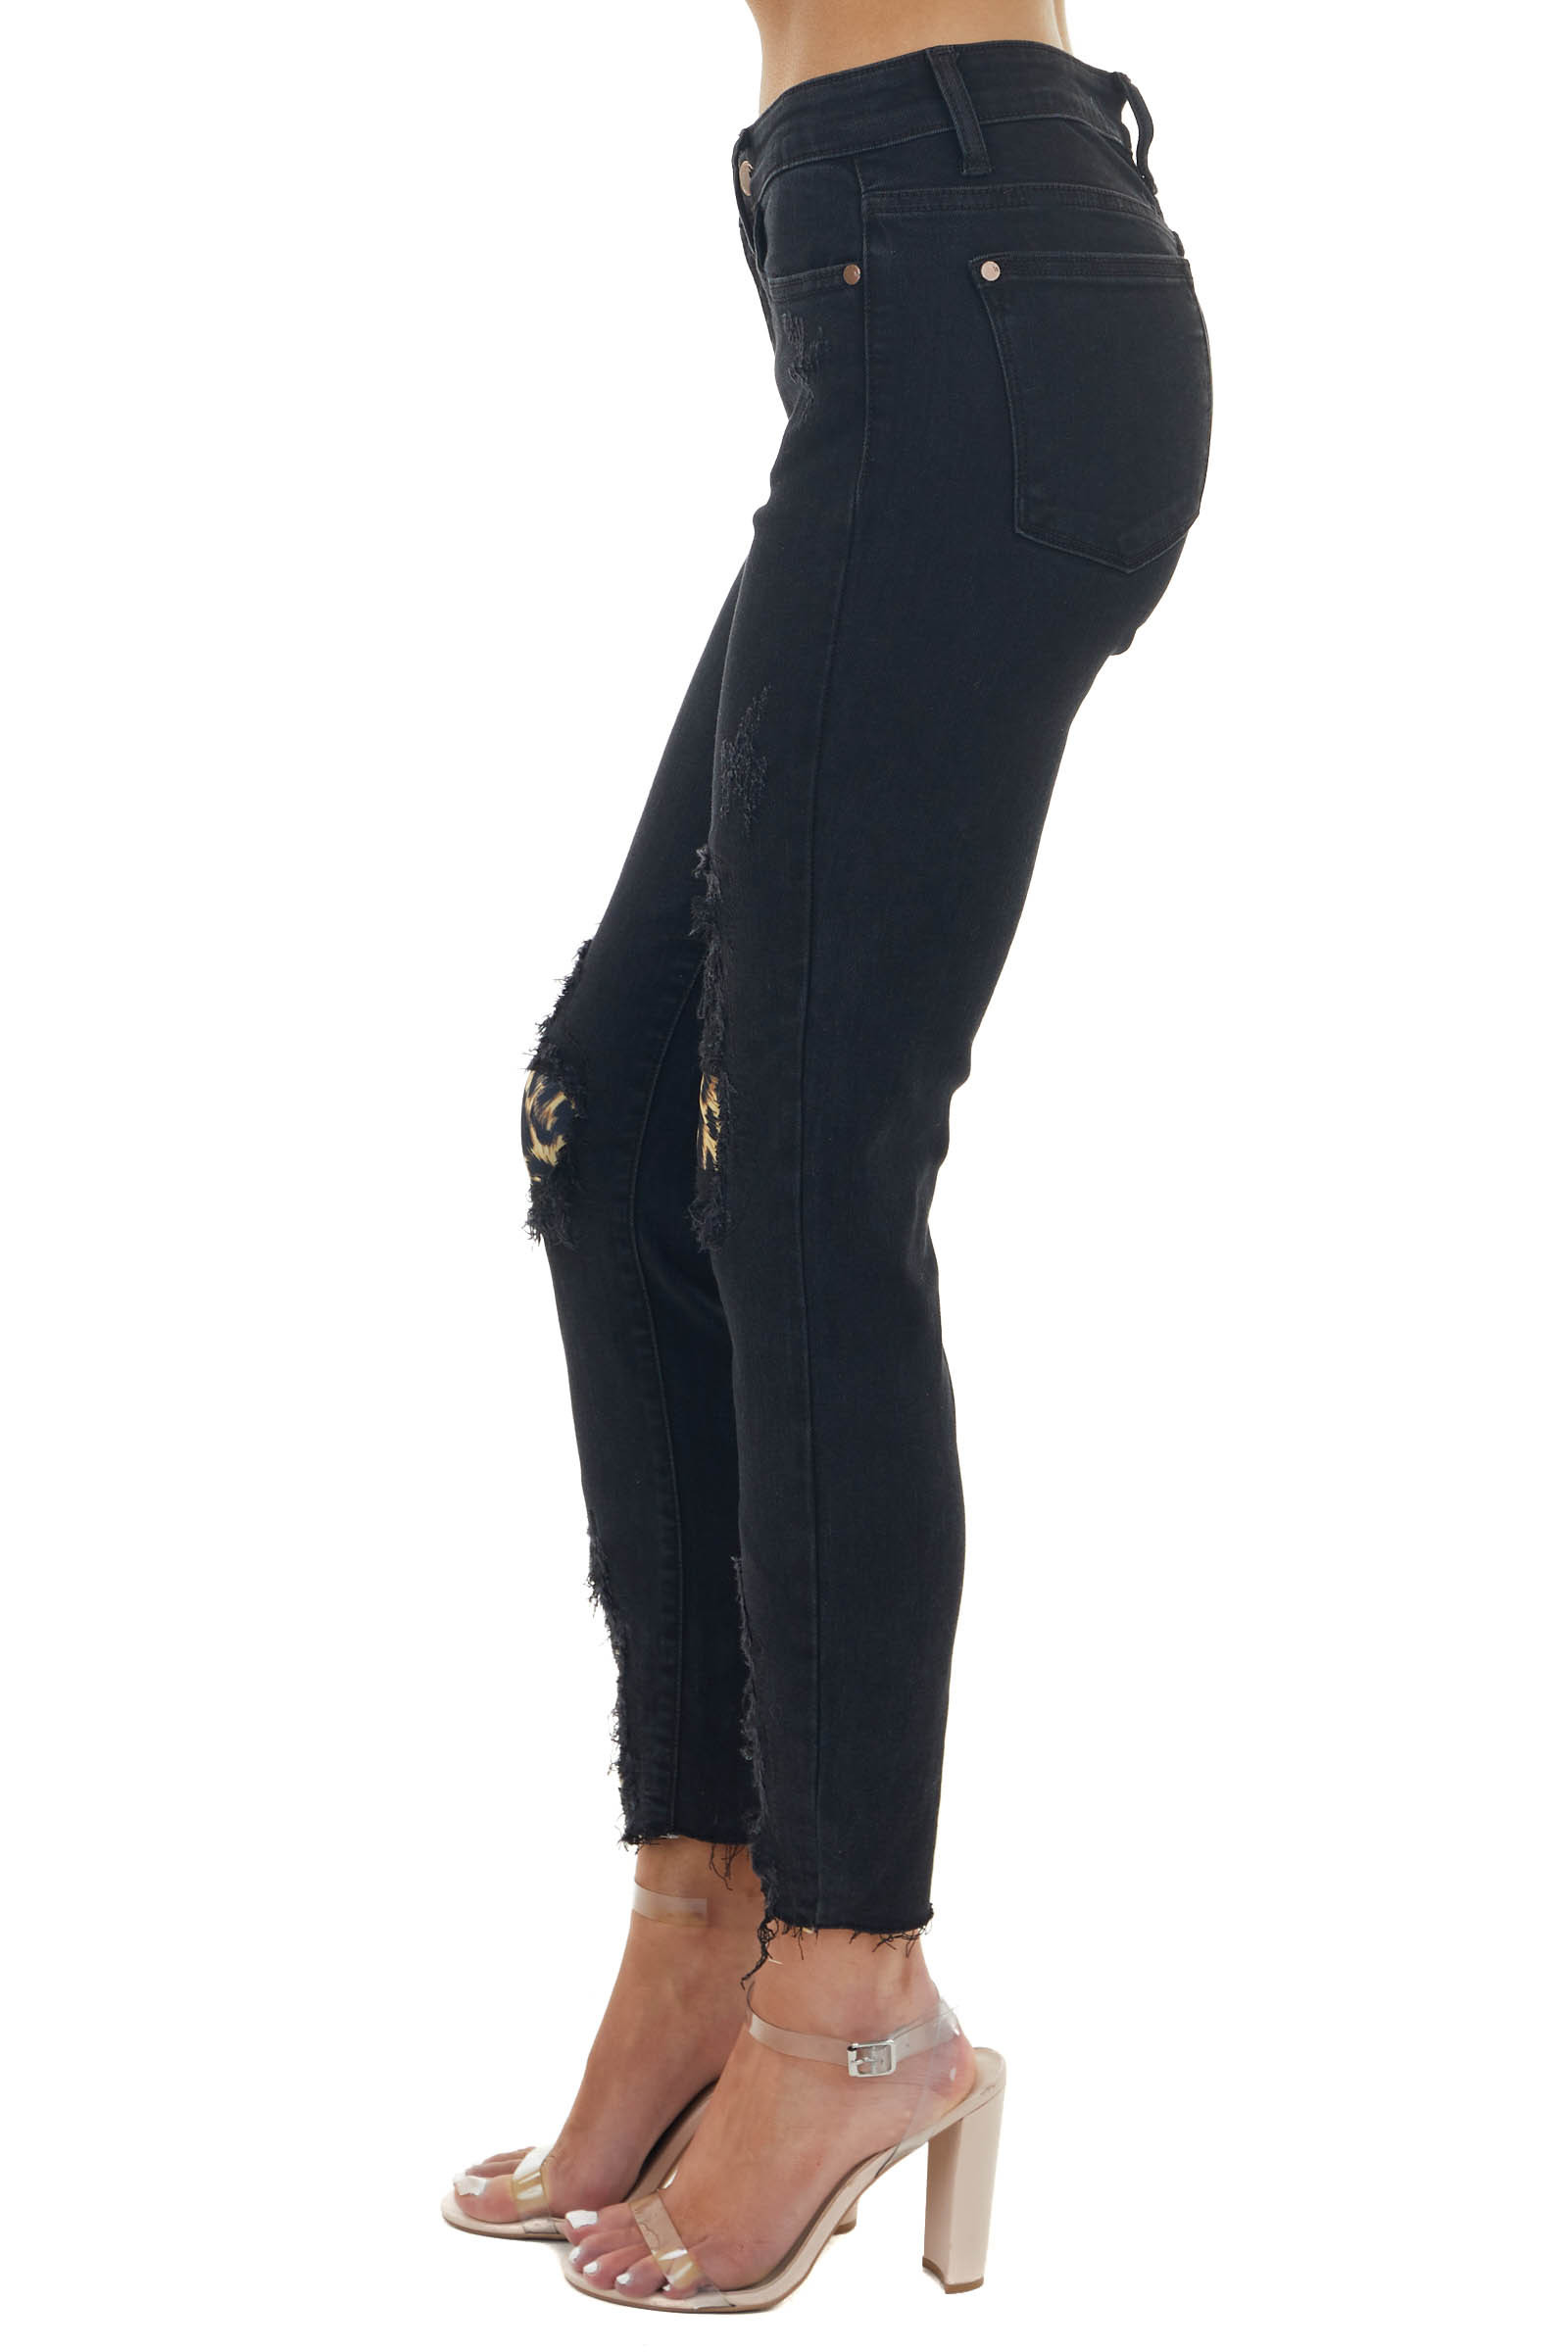 Black Mid Rise Distressed Skinny Jeans with Leopard Patches